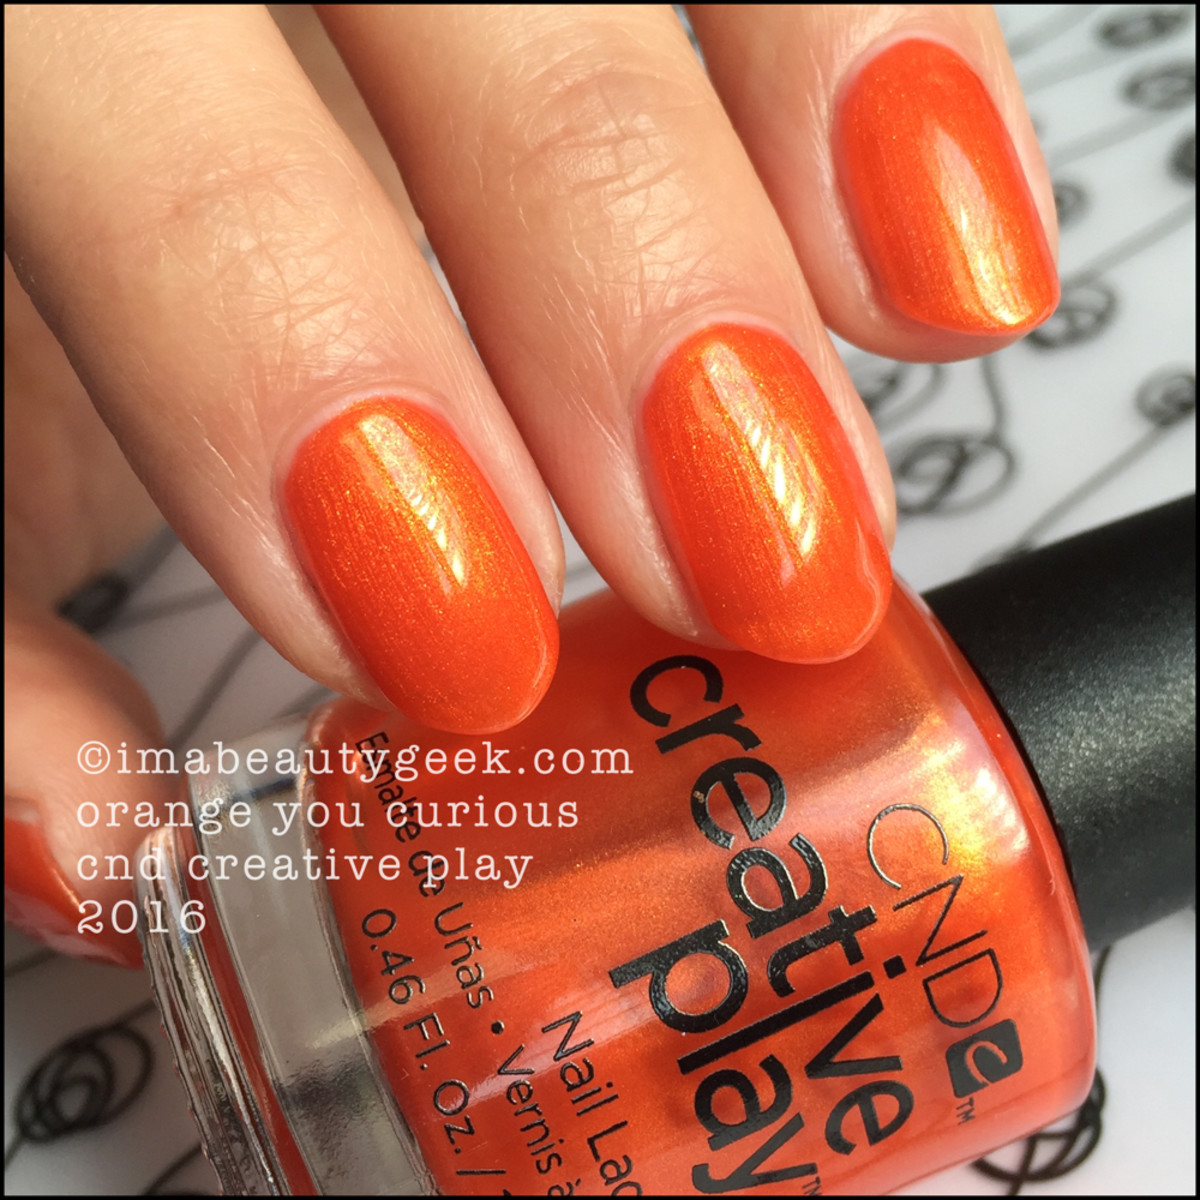 CND Creative Play Orange You Curious_CND Creative Play Nail Polish Swatches